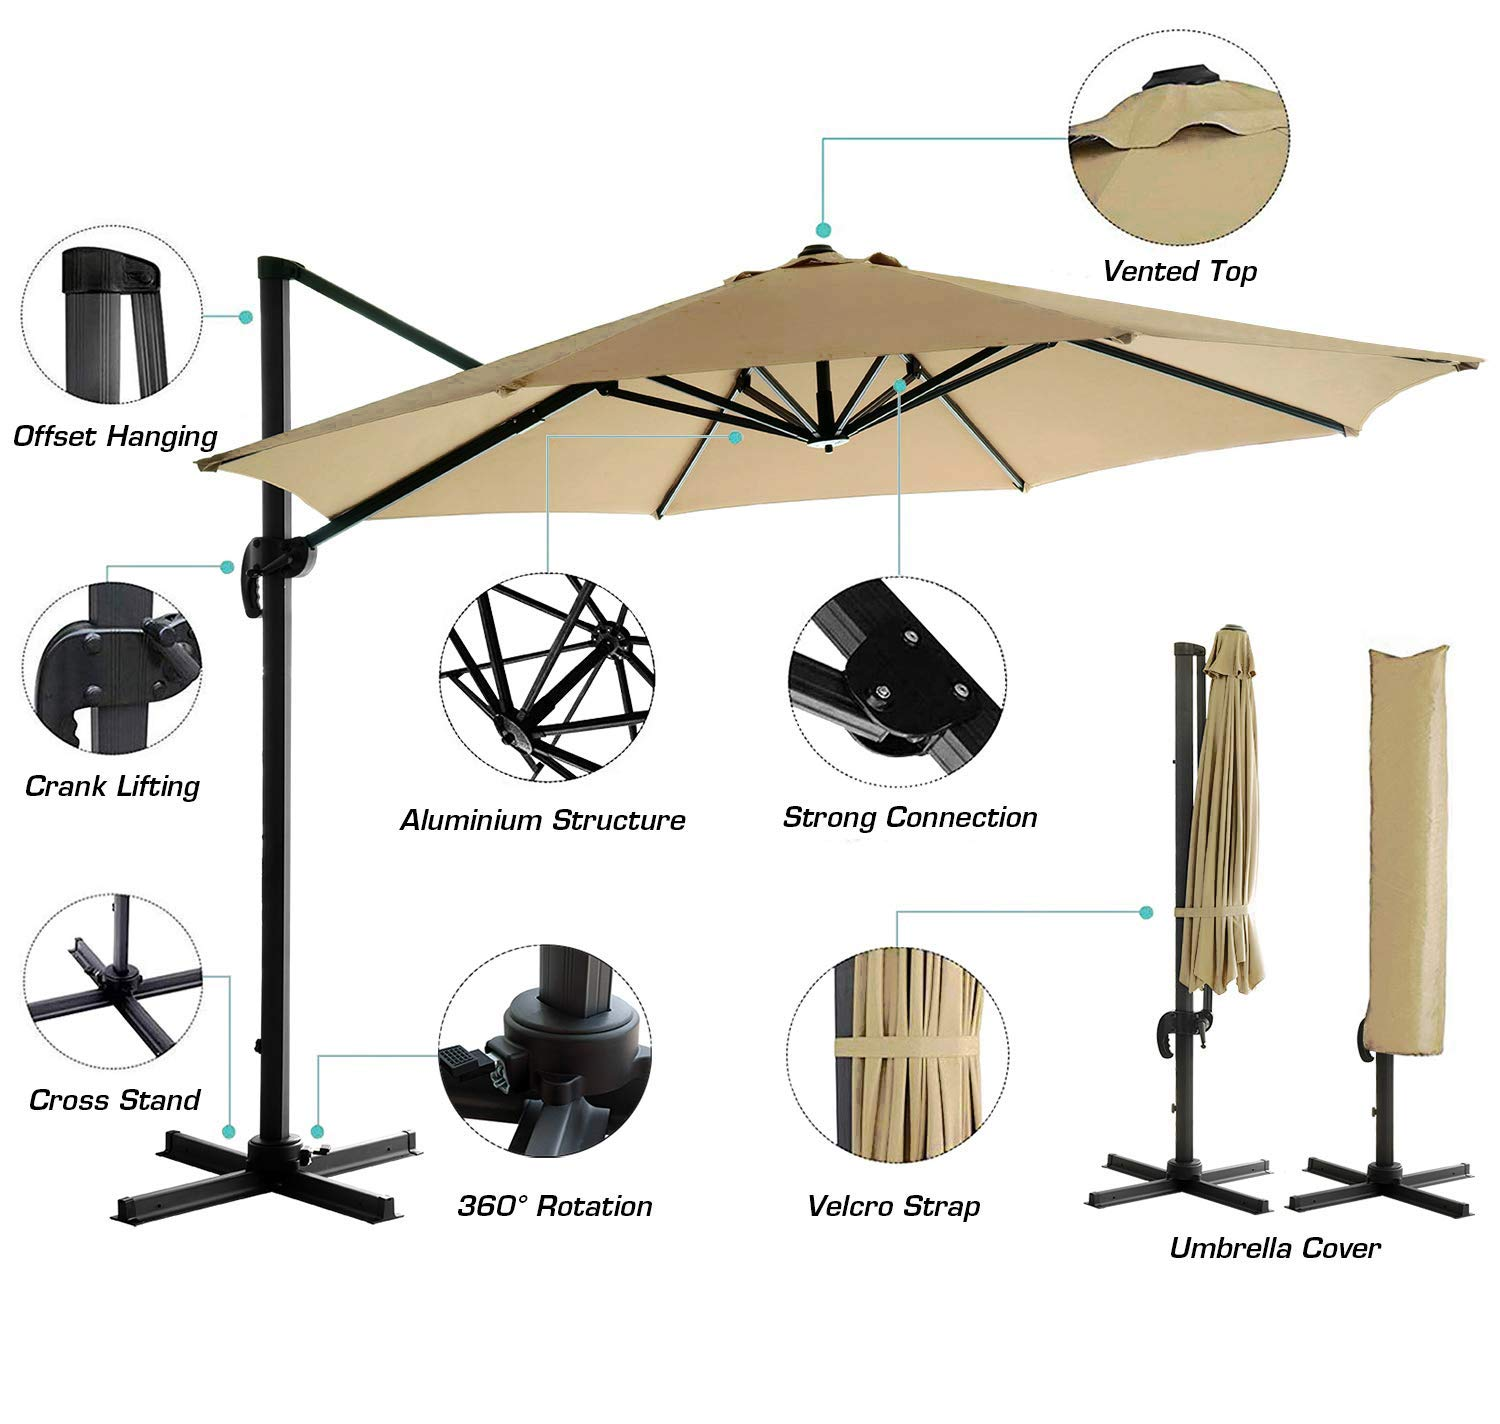 HOMEFUN 11ft Patio Aluminium Cantilever Umbrella, Offset Hanging Umbrella with Cross Stand and Cover, Beige